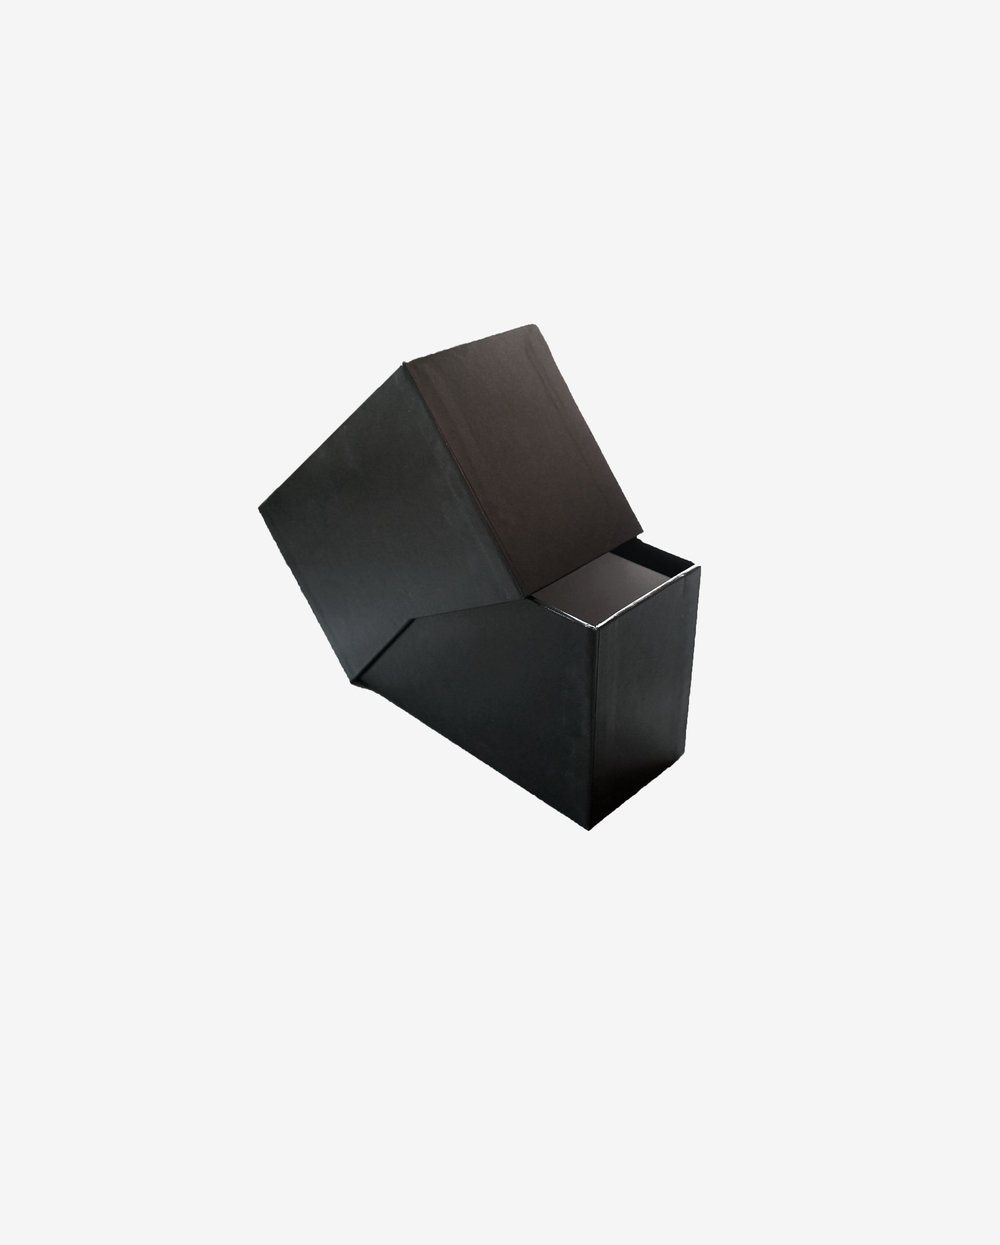 Graded Card Storage Box & Graded Card Storage Box u2014 Native ArchivalShop